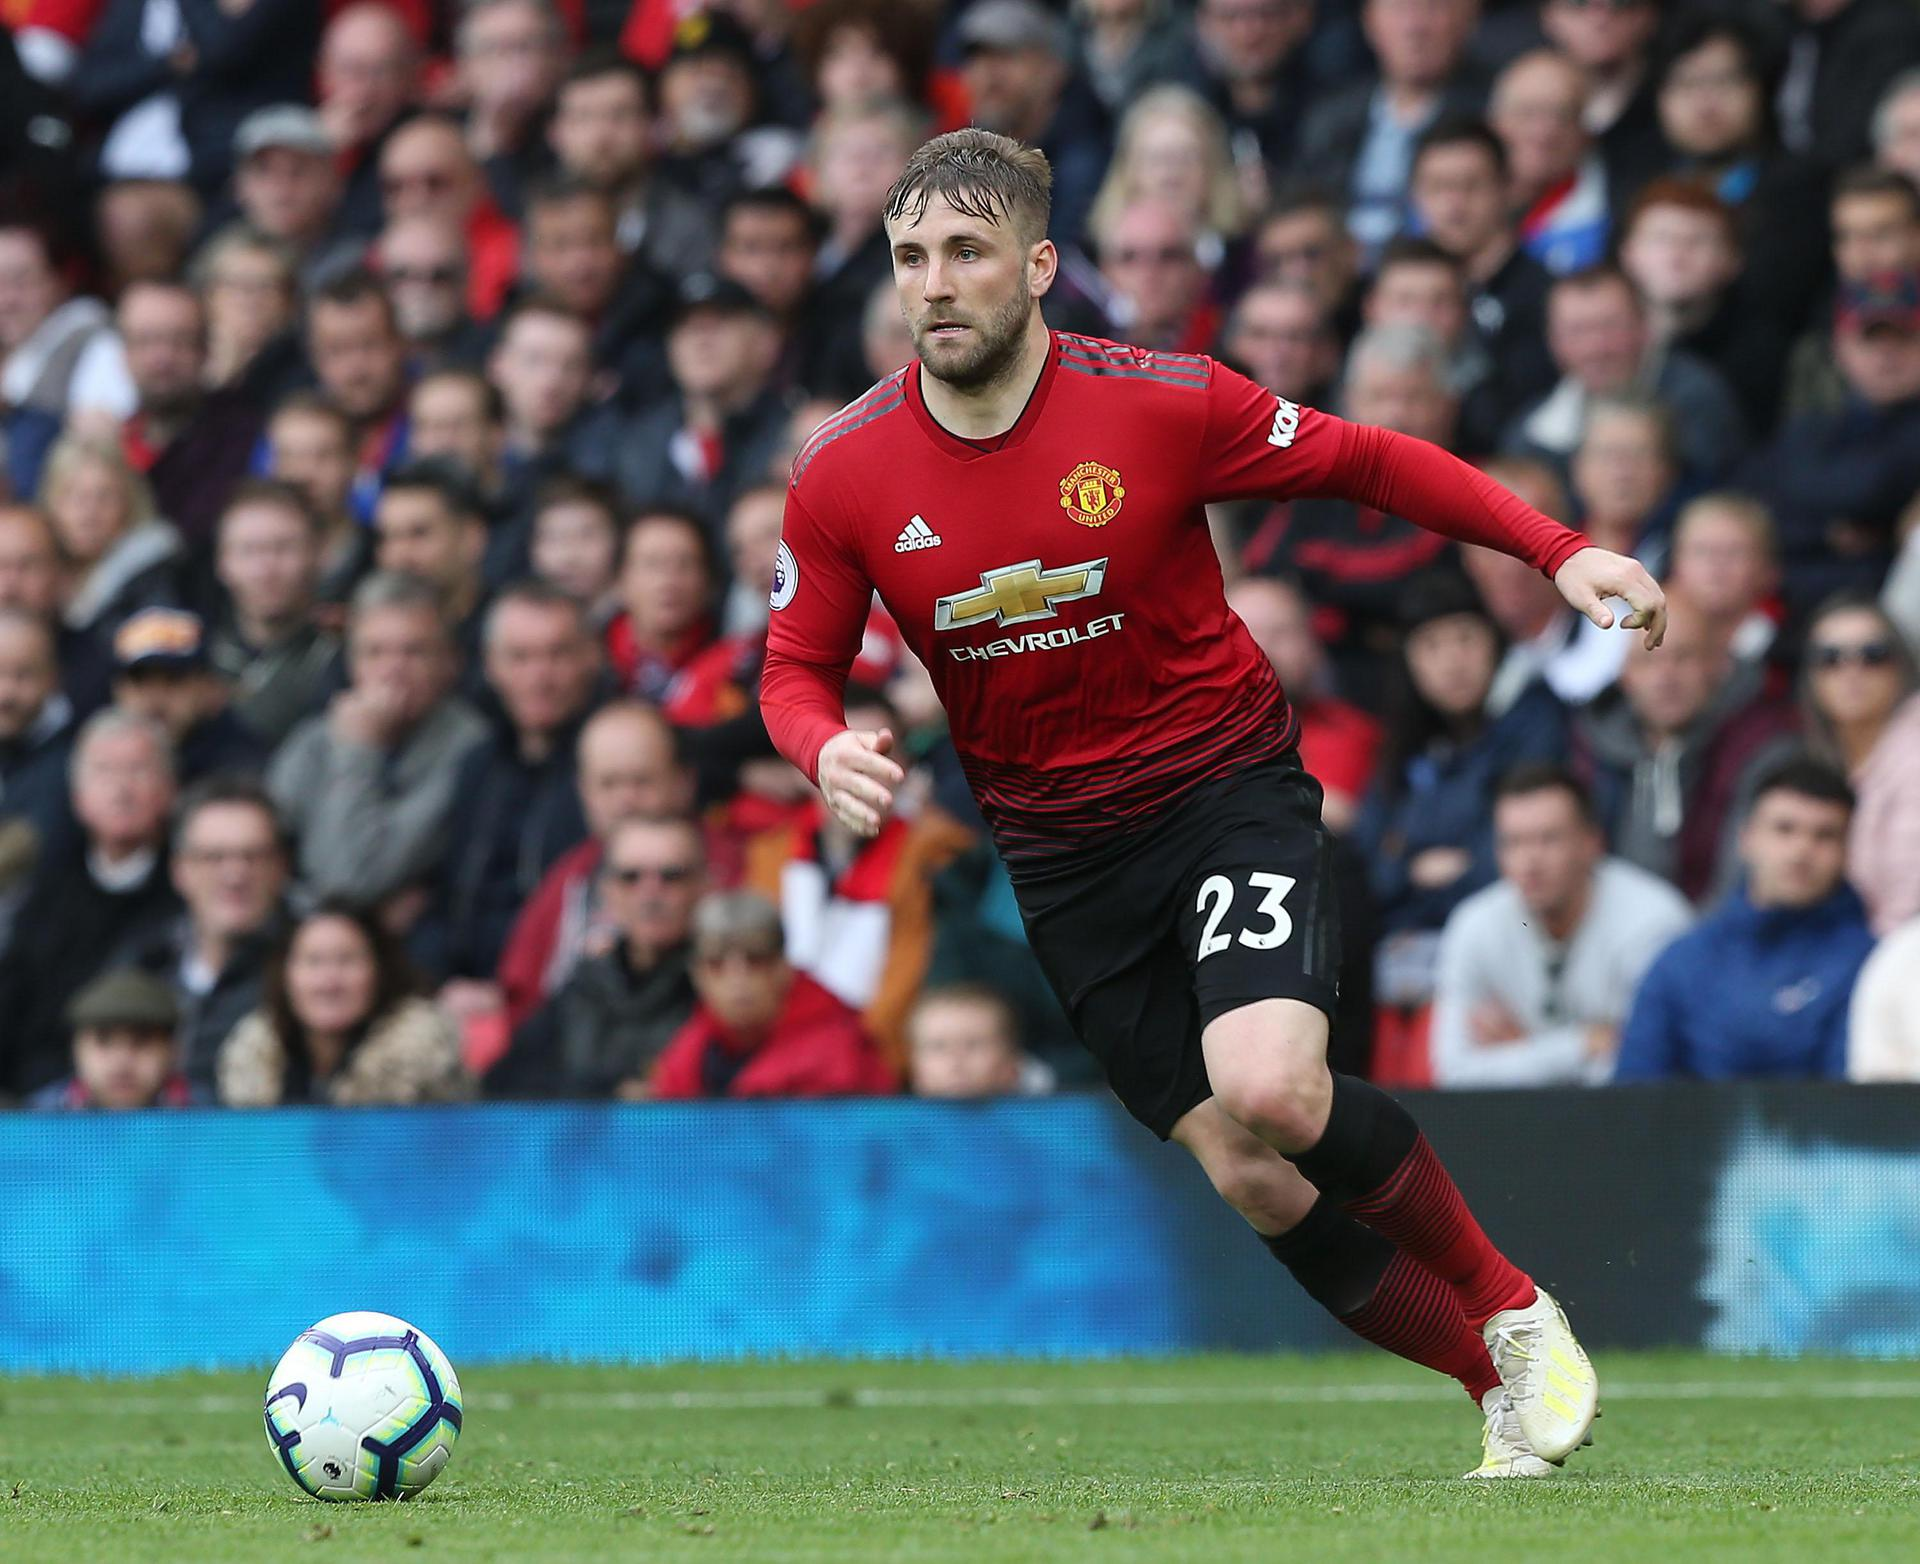 Luke Shaw on the attack against Chelsea